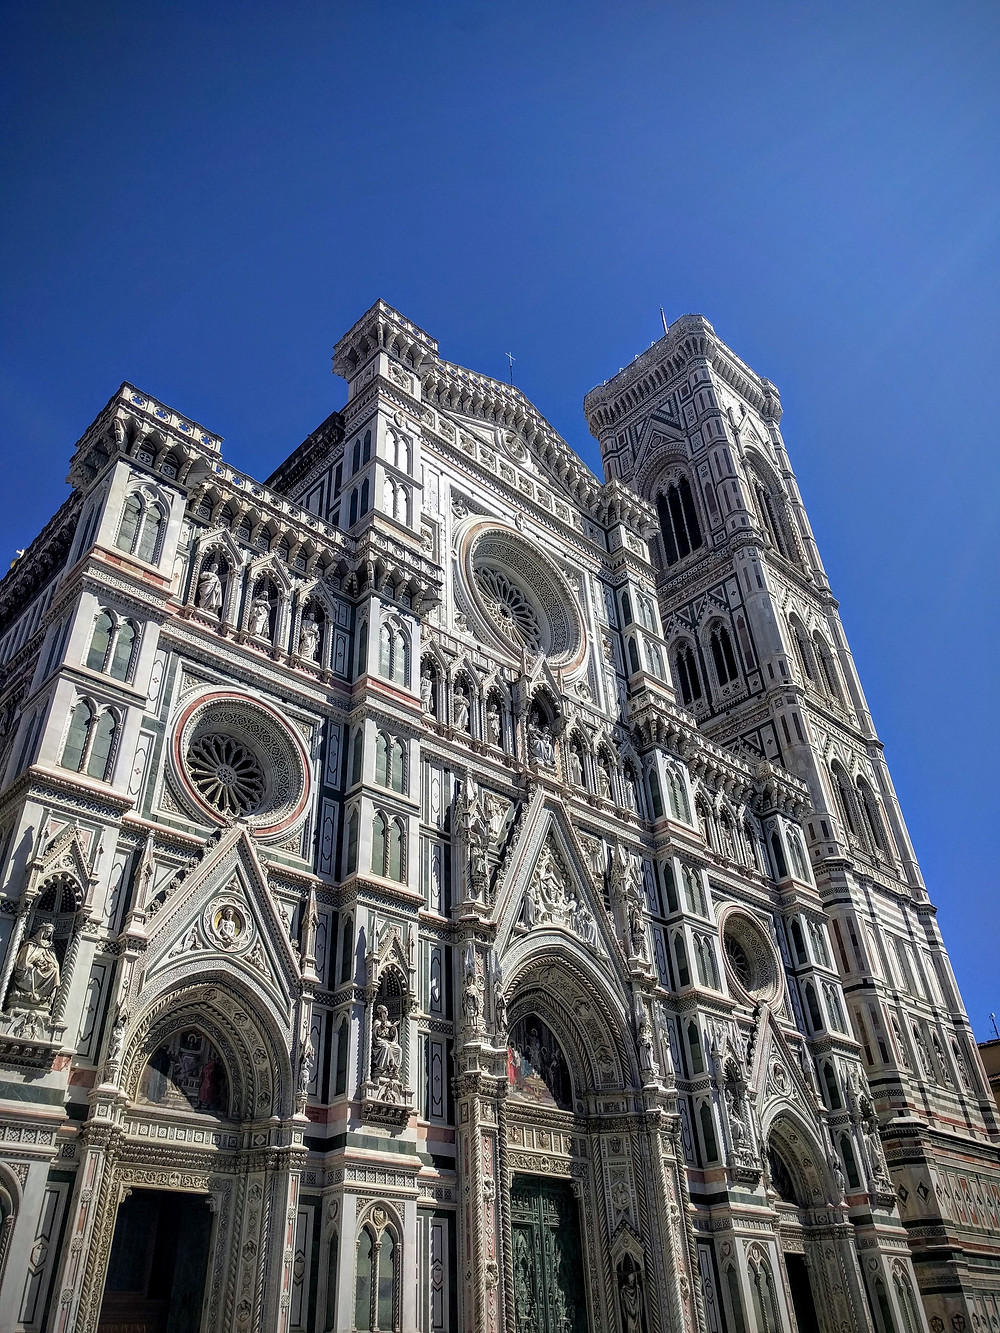 Cathedral of Santa Maria del Fiore (Florence, Italy)